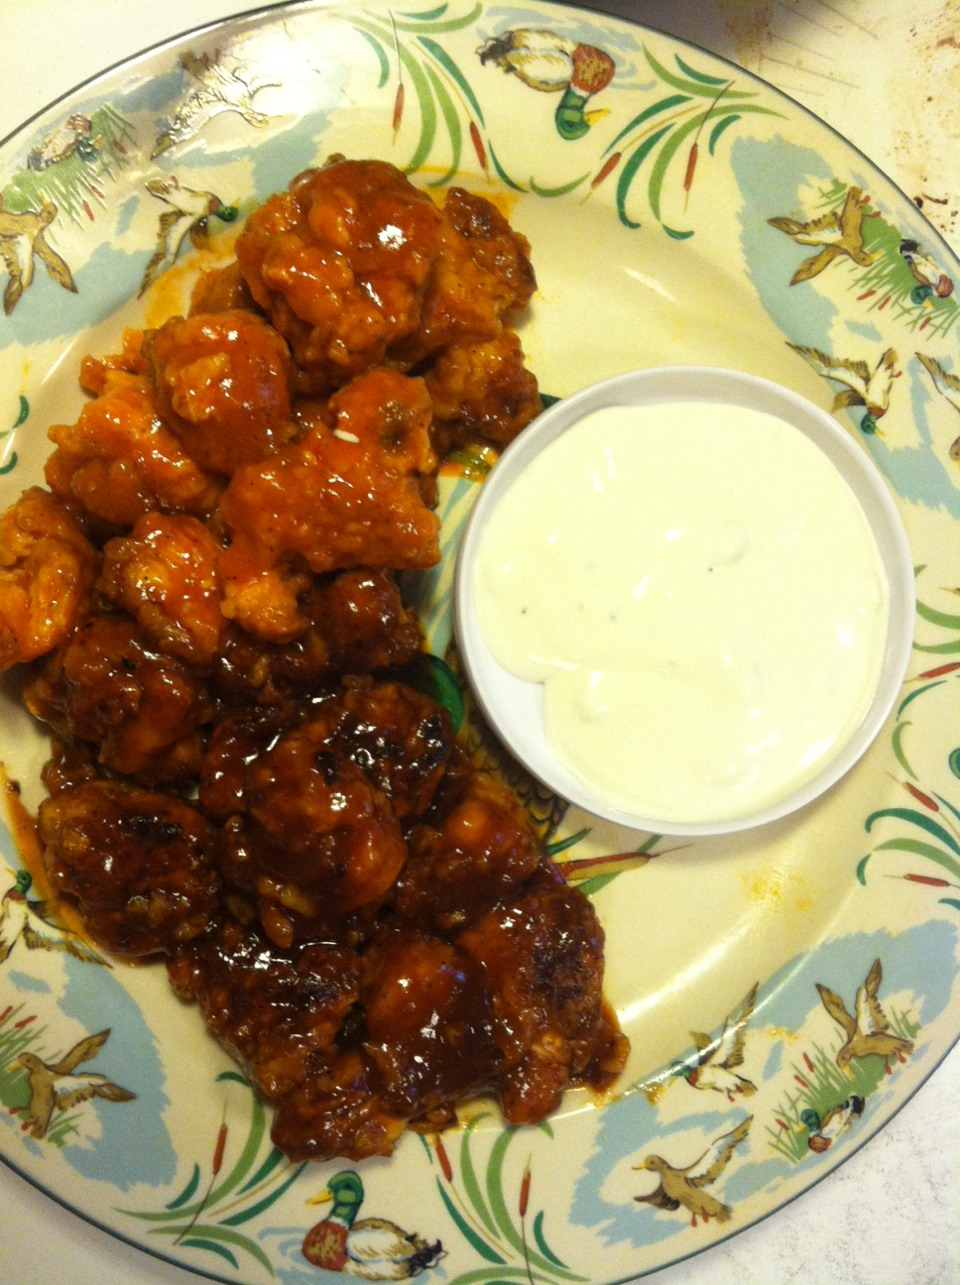 Toss chicken in sauce till evenly coated, transfer to plate, serve with your favorite dipping sauce and some celery. Enjoy!